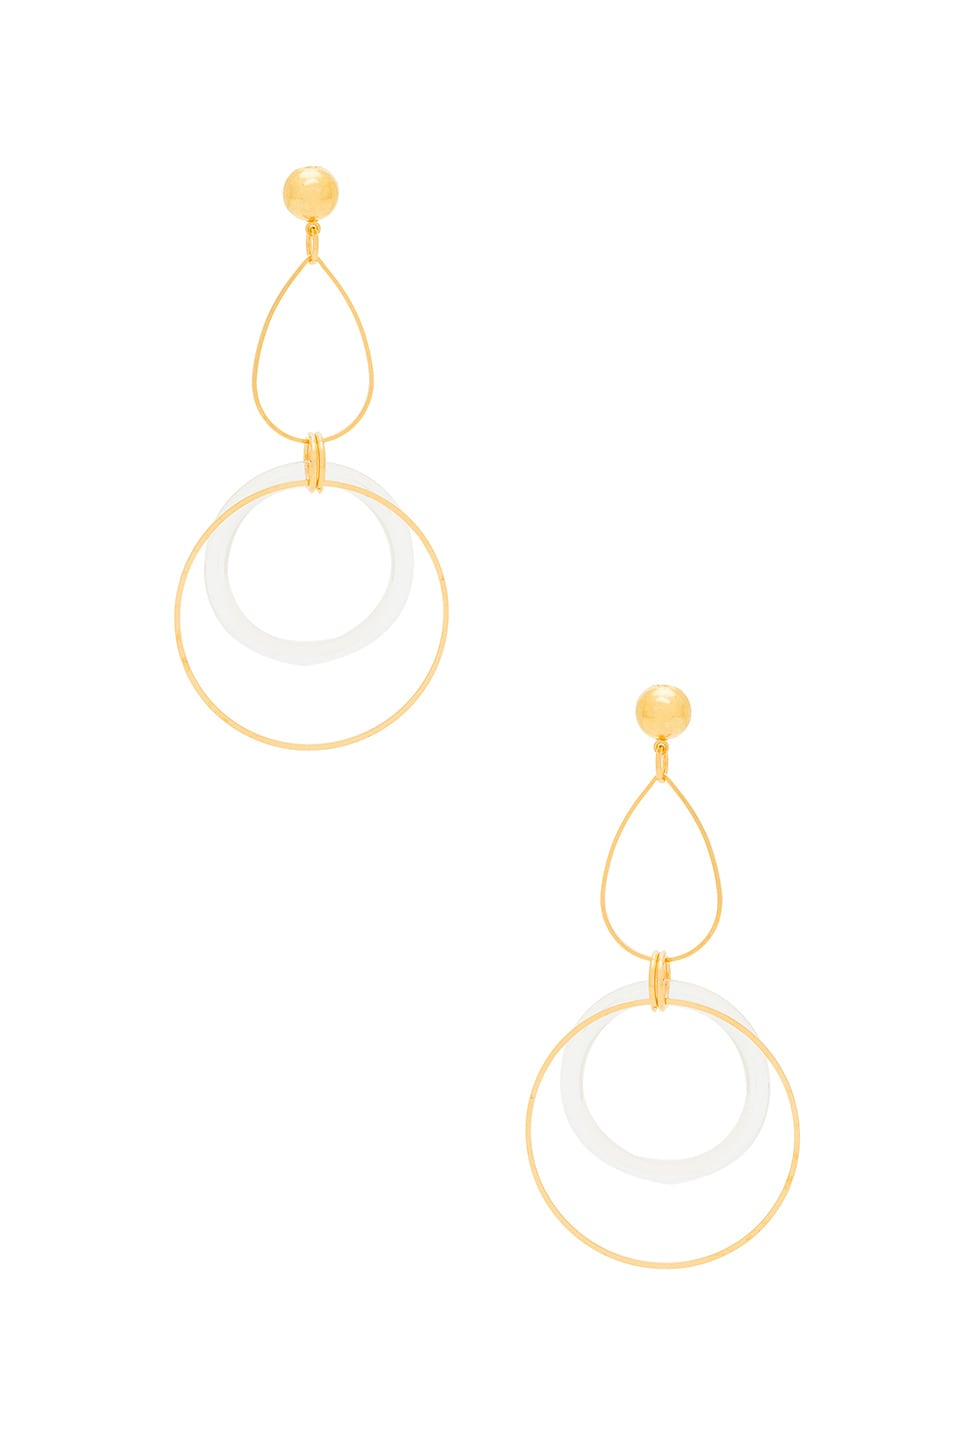 LARUICCI Linked Circle Earring in Gold